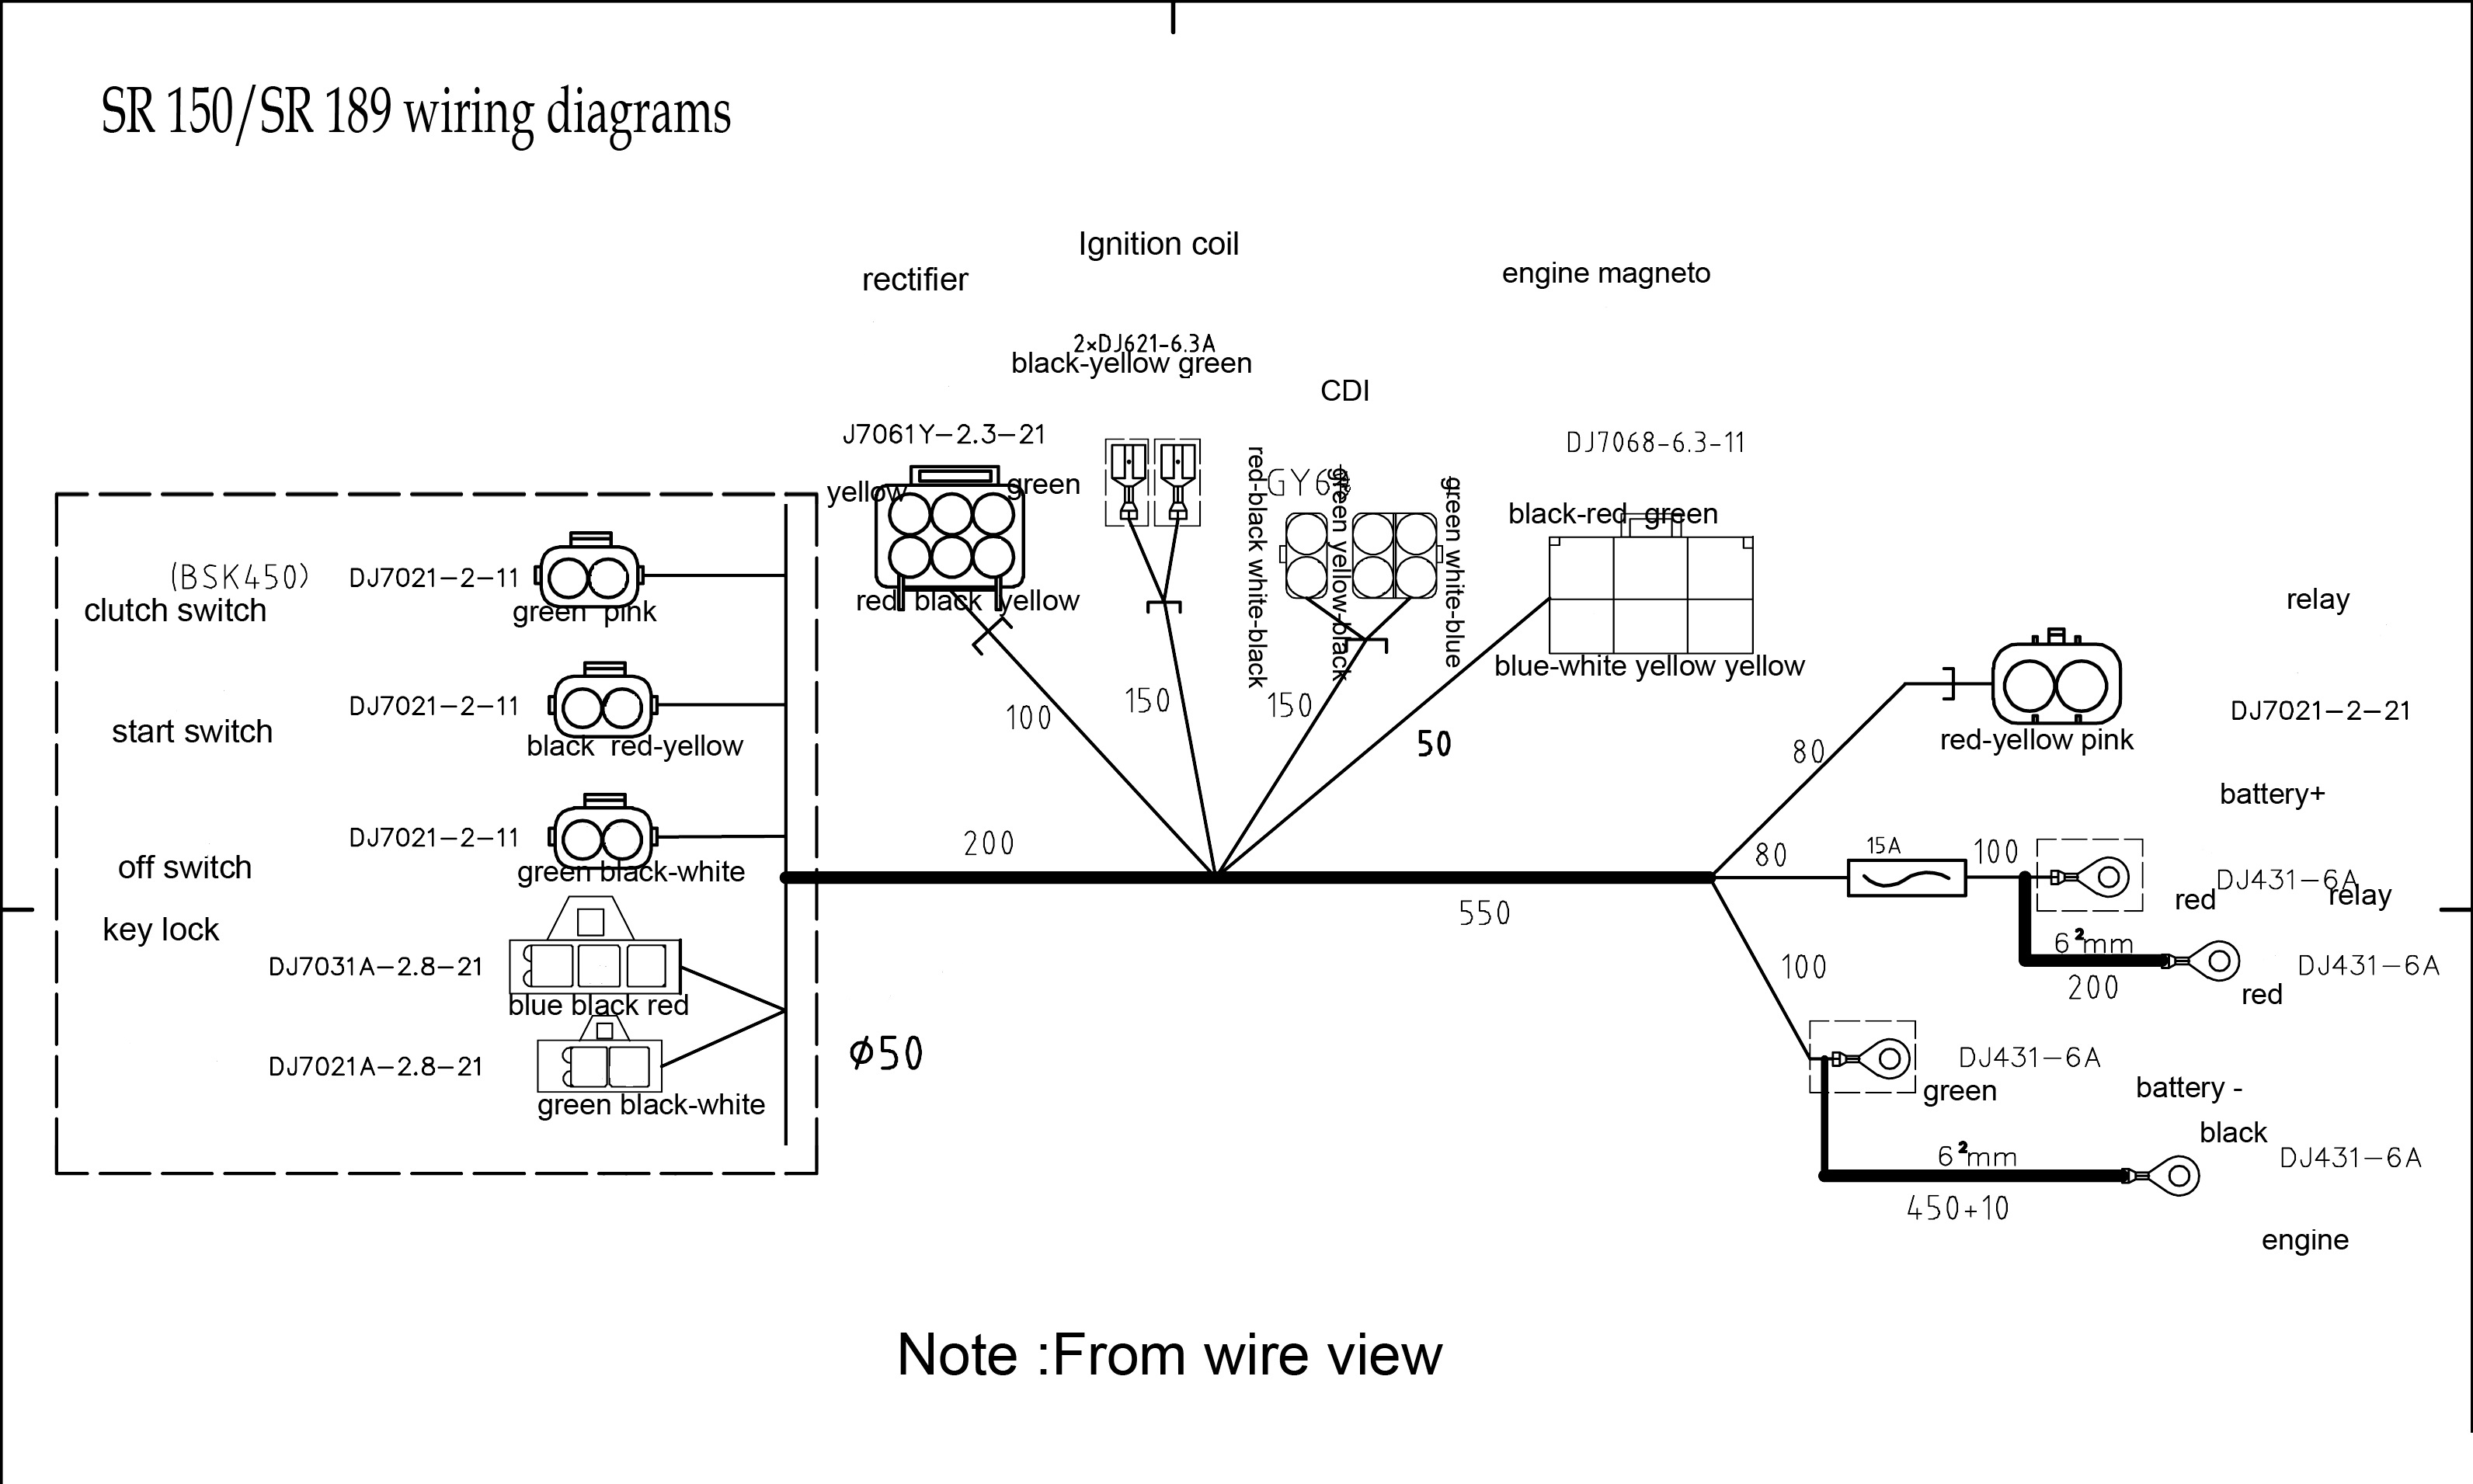 SR150_189_Wiring_Diagram lifan 125cc engine wiring diagram wiring library